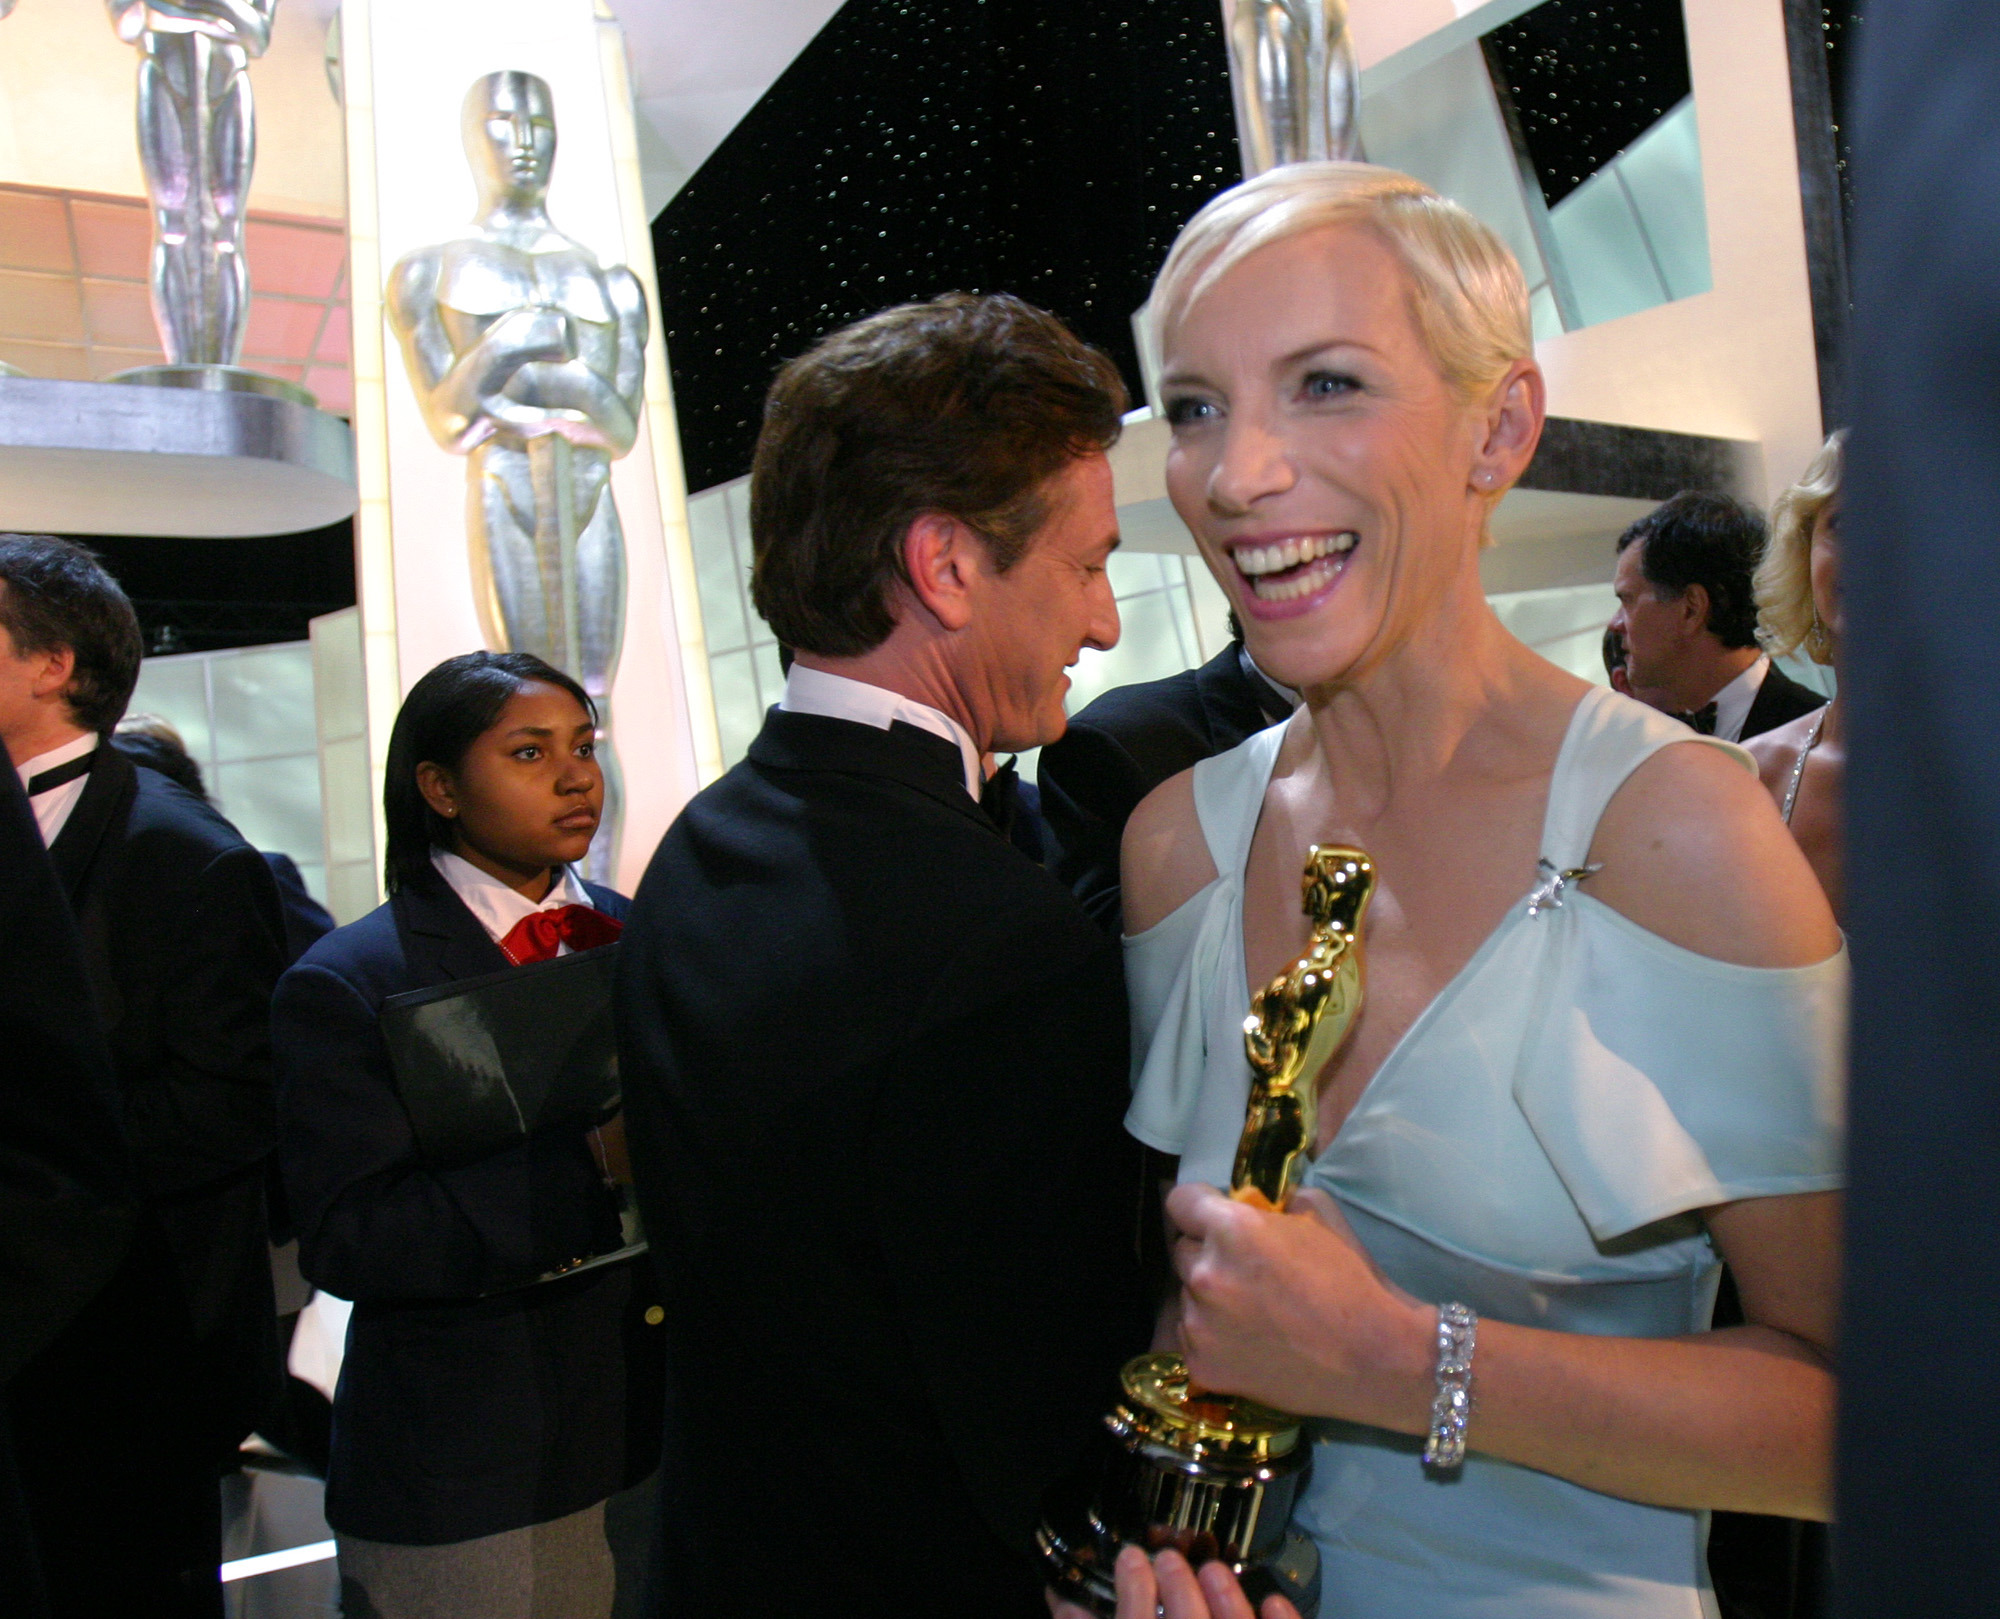 Annie Lennox leaves the stage with her Oscar for best original song for Into the West from the motion picture The Lord of the